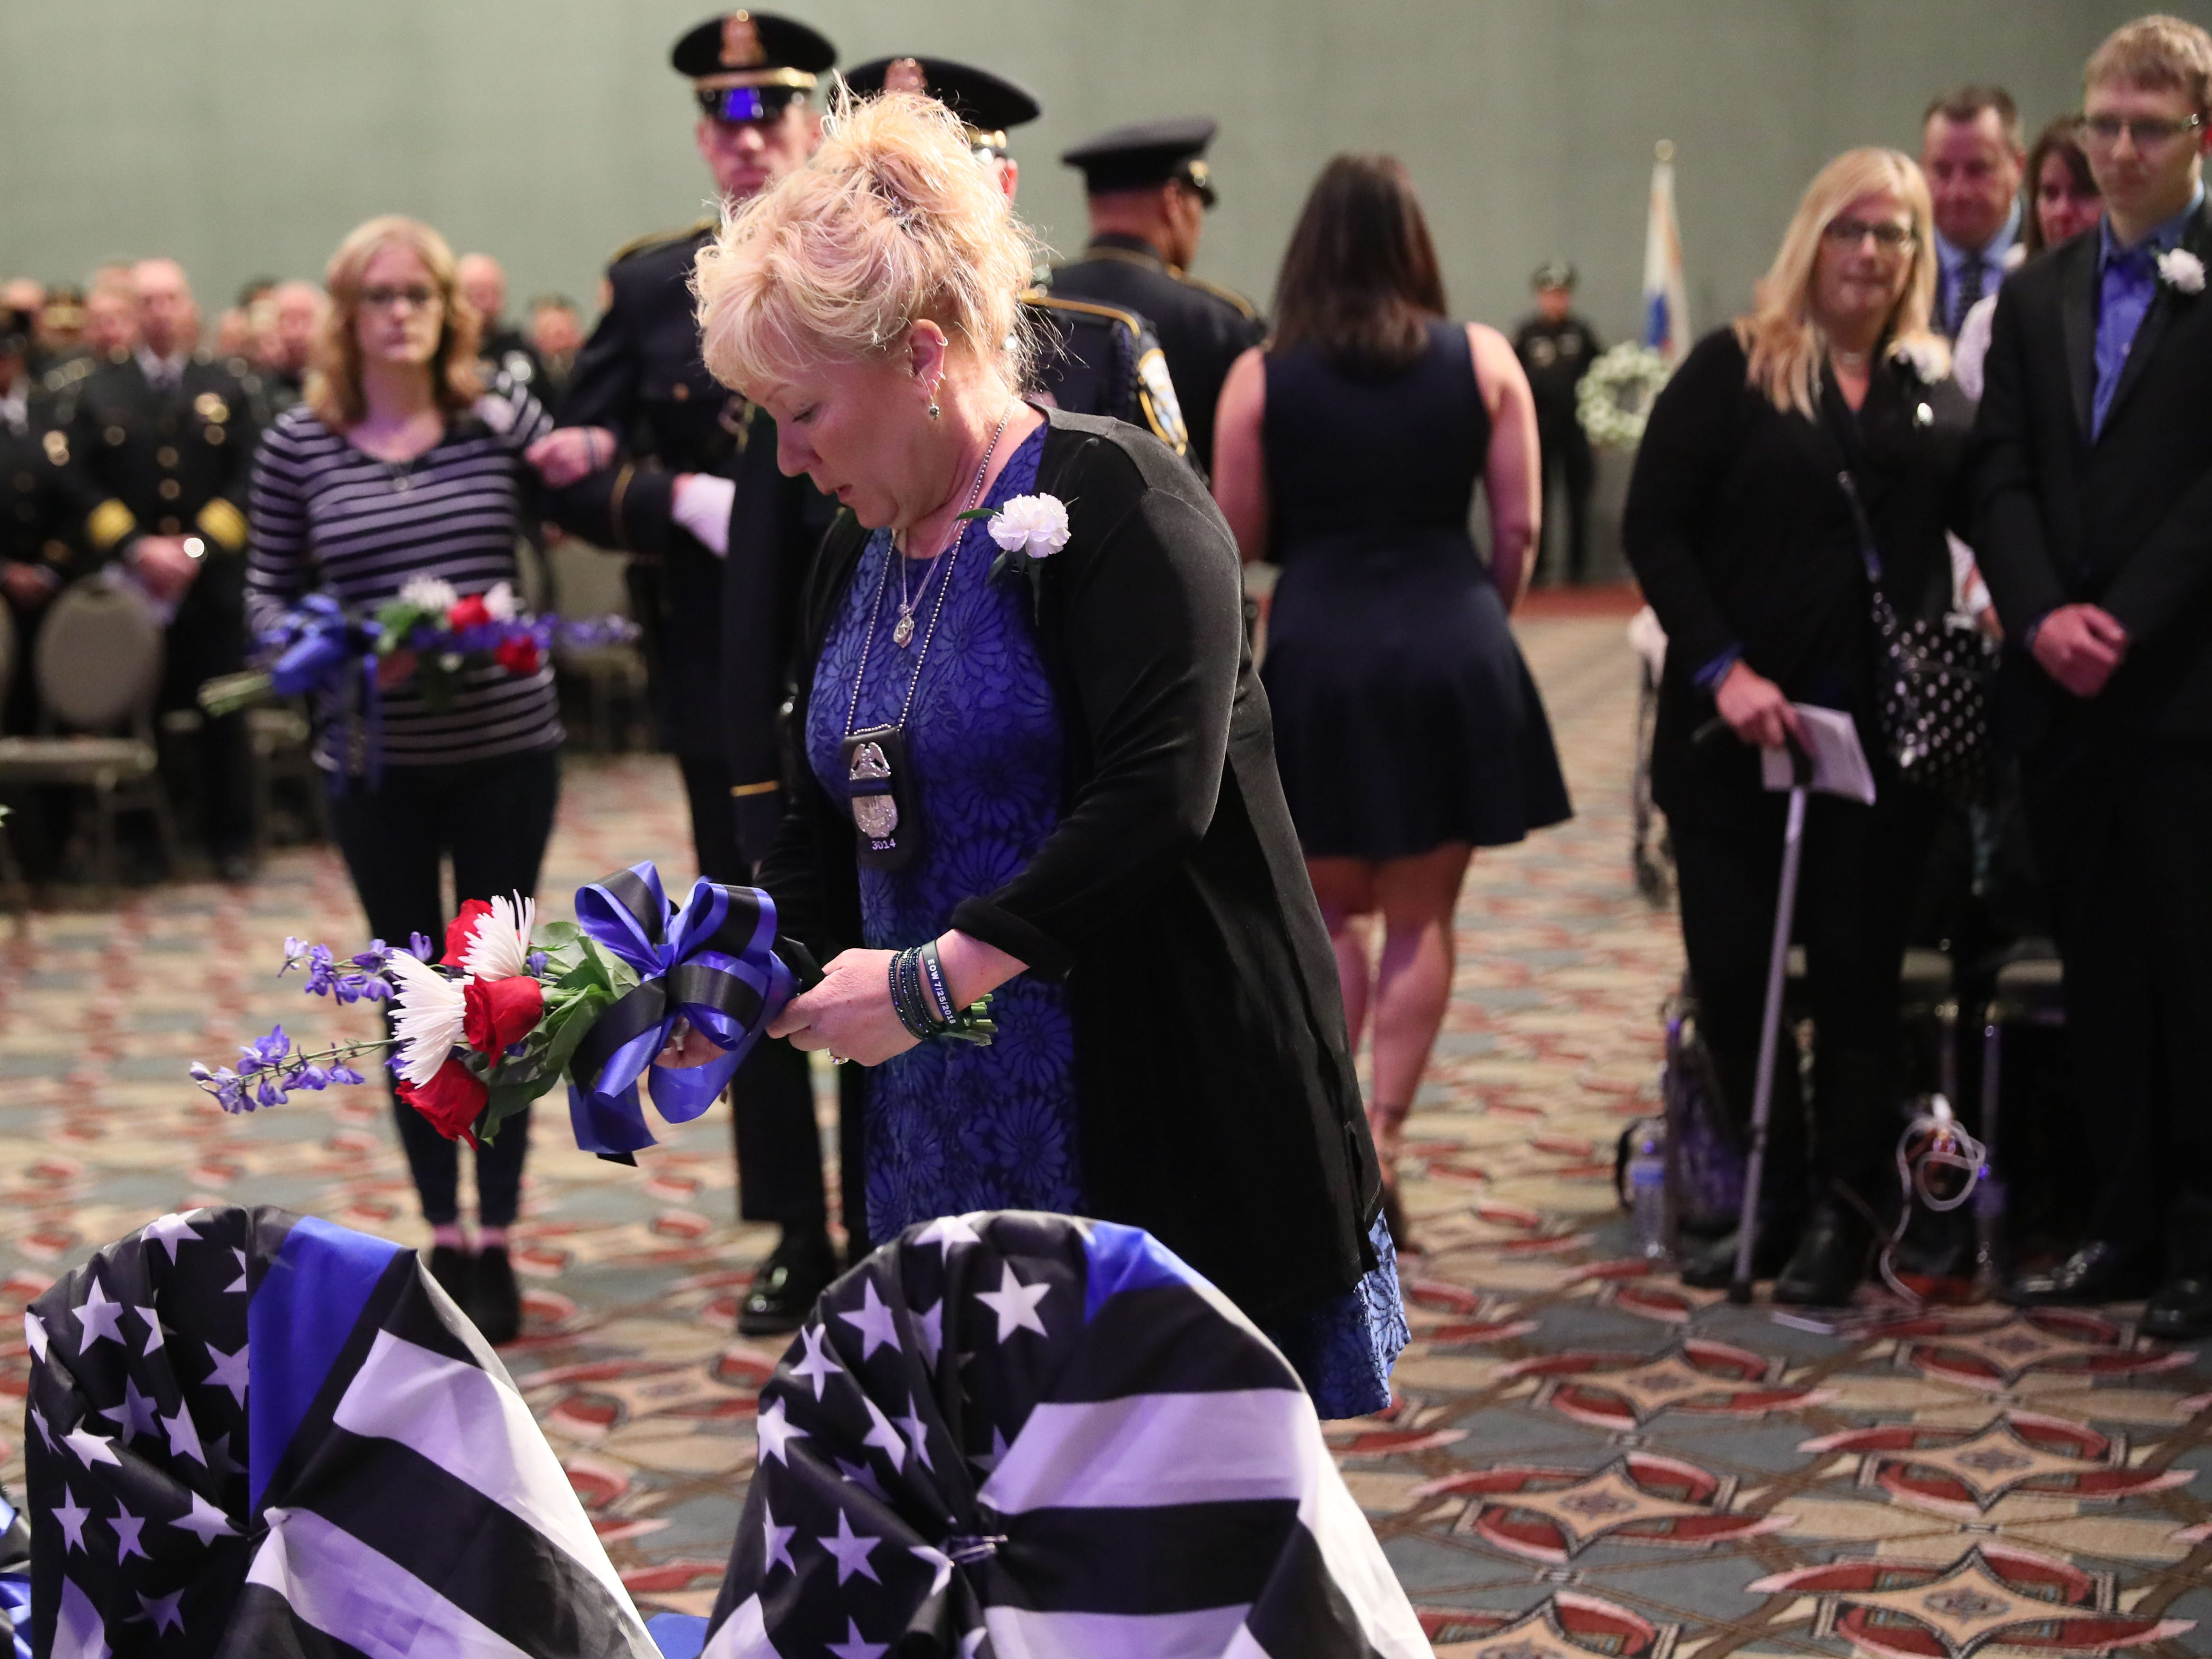 Susan Michalski lays a memorial wreath of flowers on a chair draped with the law enforcement flag in memory of her husband, Milwaukee Police Officer Michael Michalski.